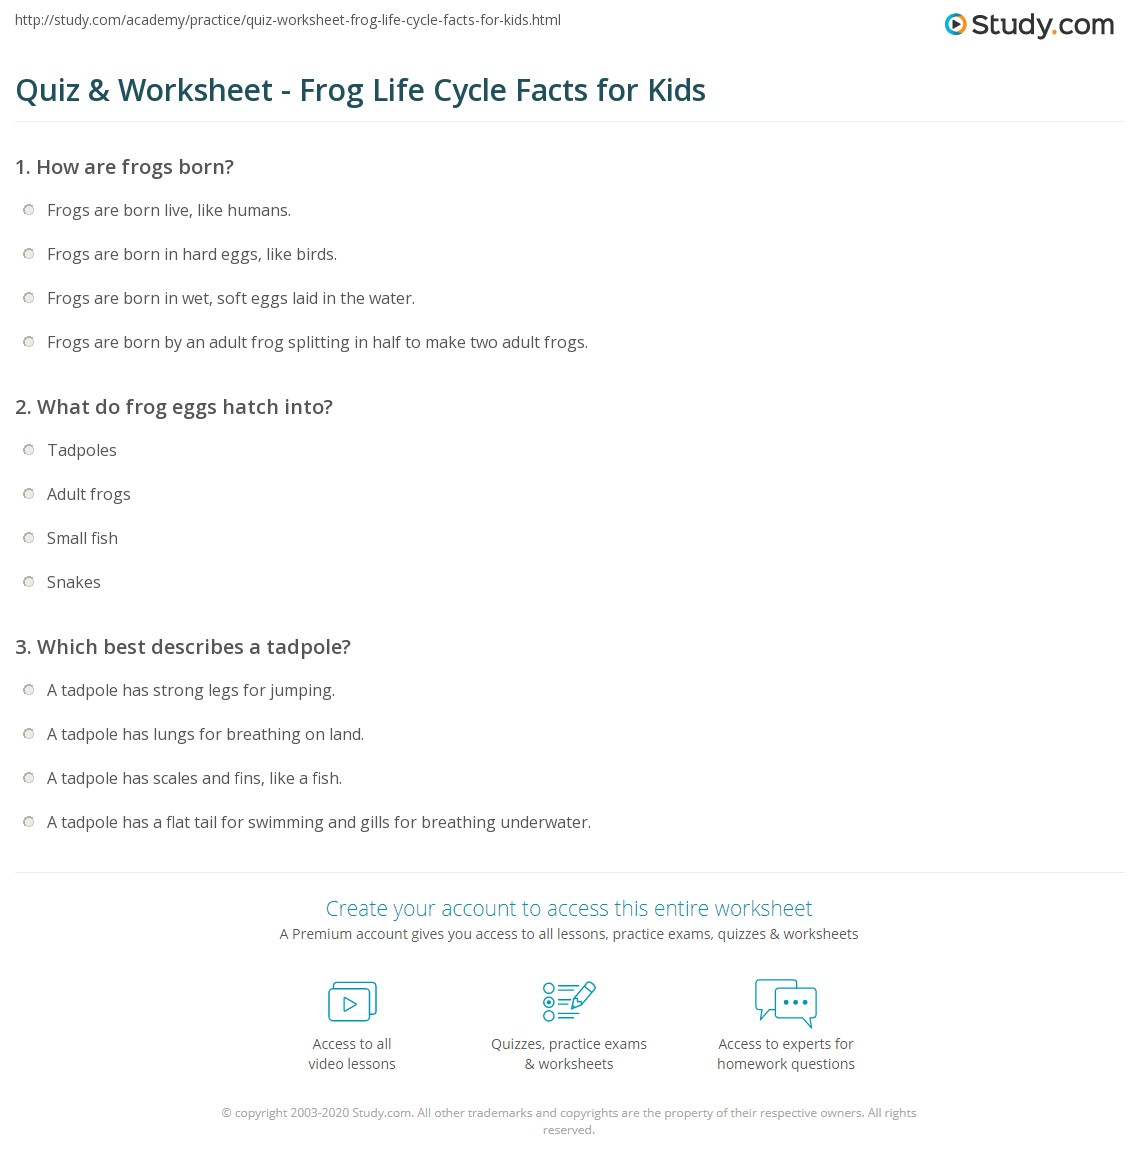 Quiz Worksheet Frog Life Cycle Facts for Kids – Frog Life Cycle Worksheet